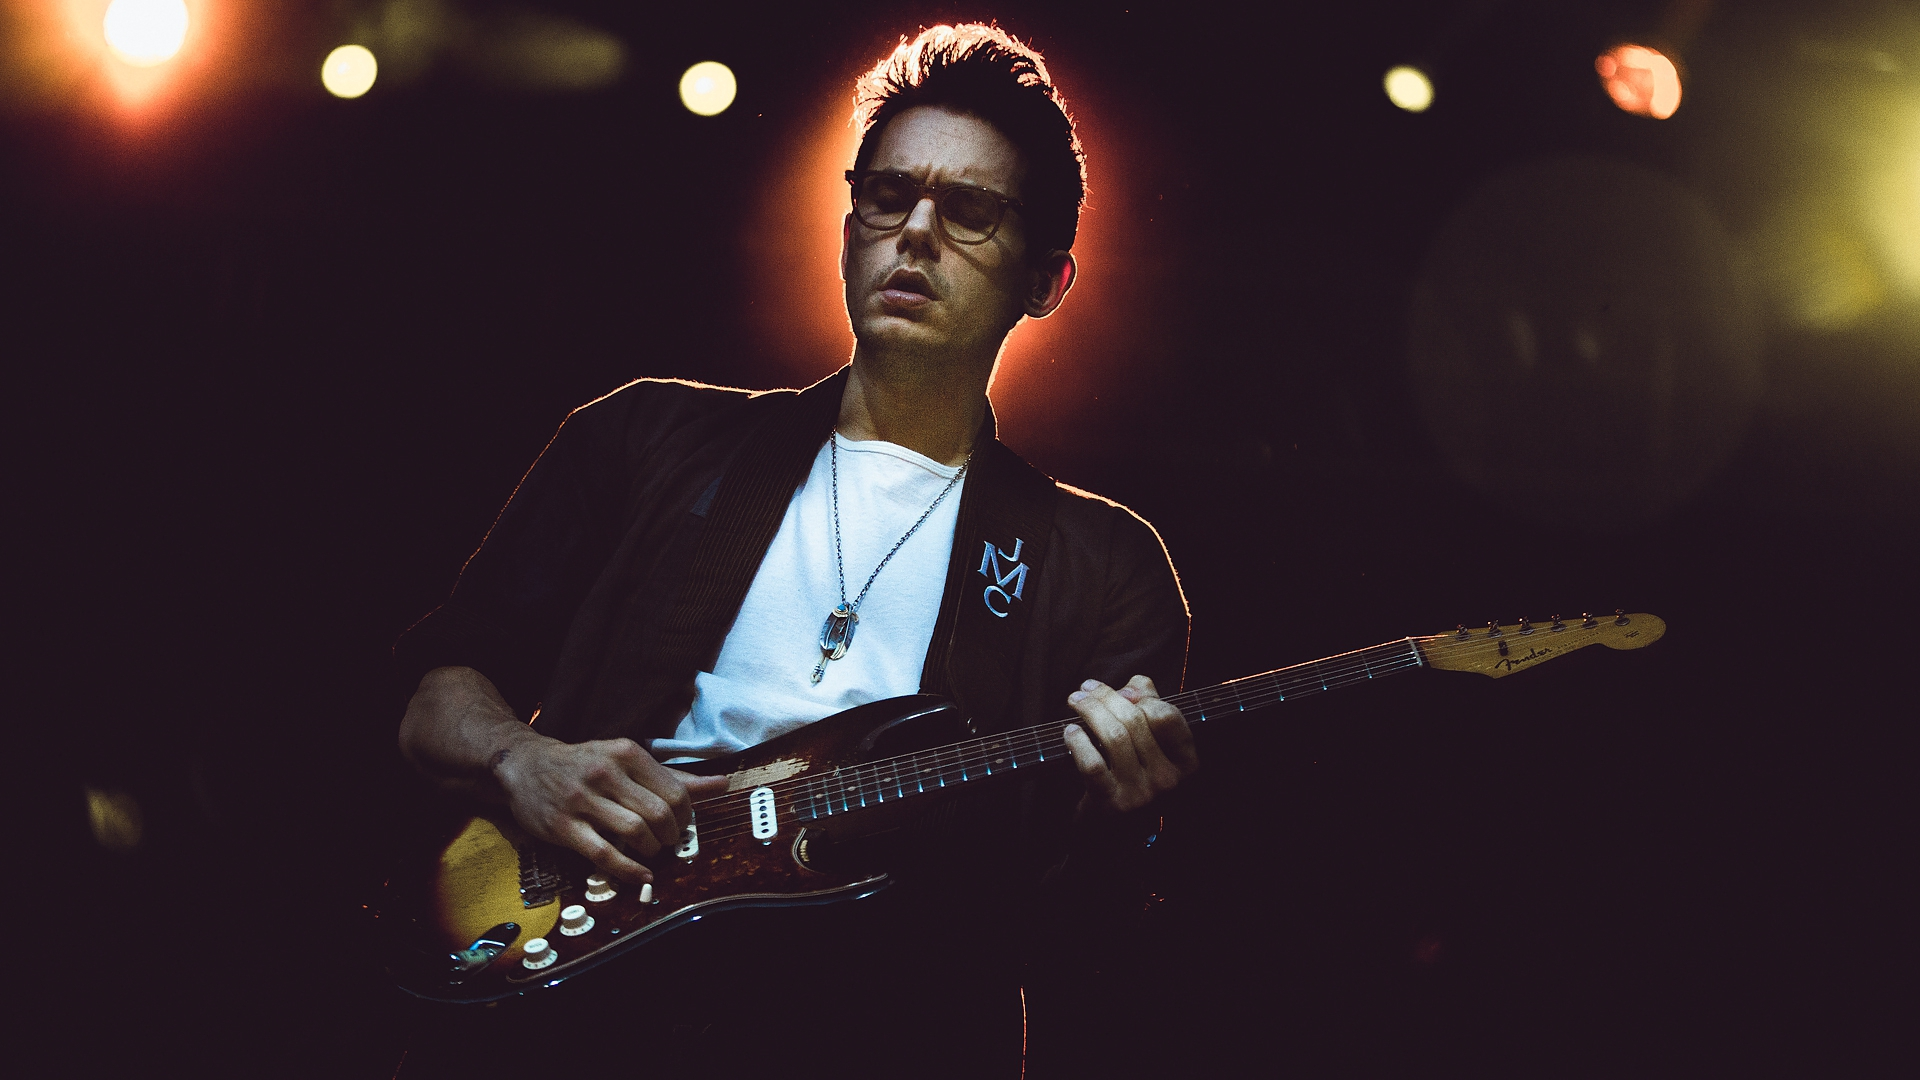 John Mayer Wallpaper: John Mayer For Desktop